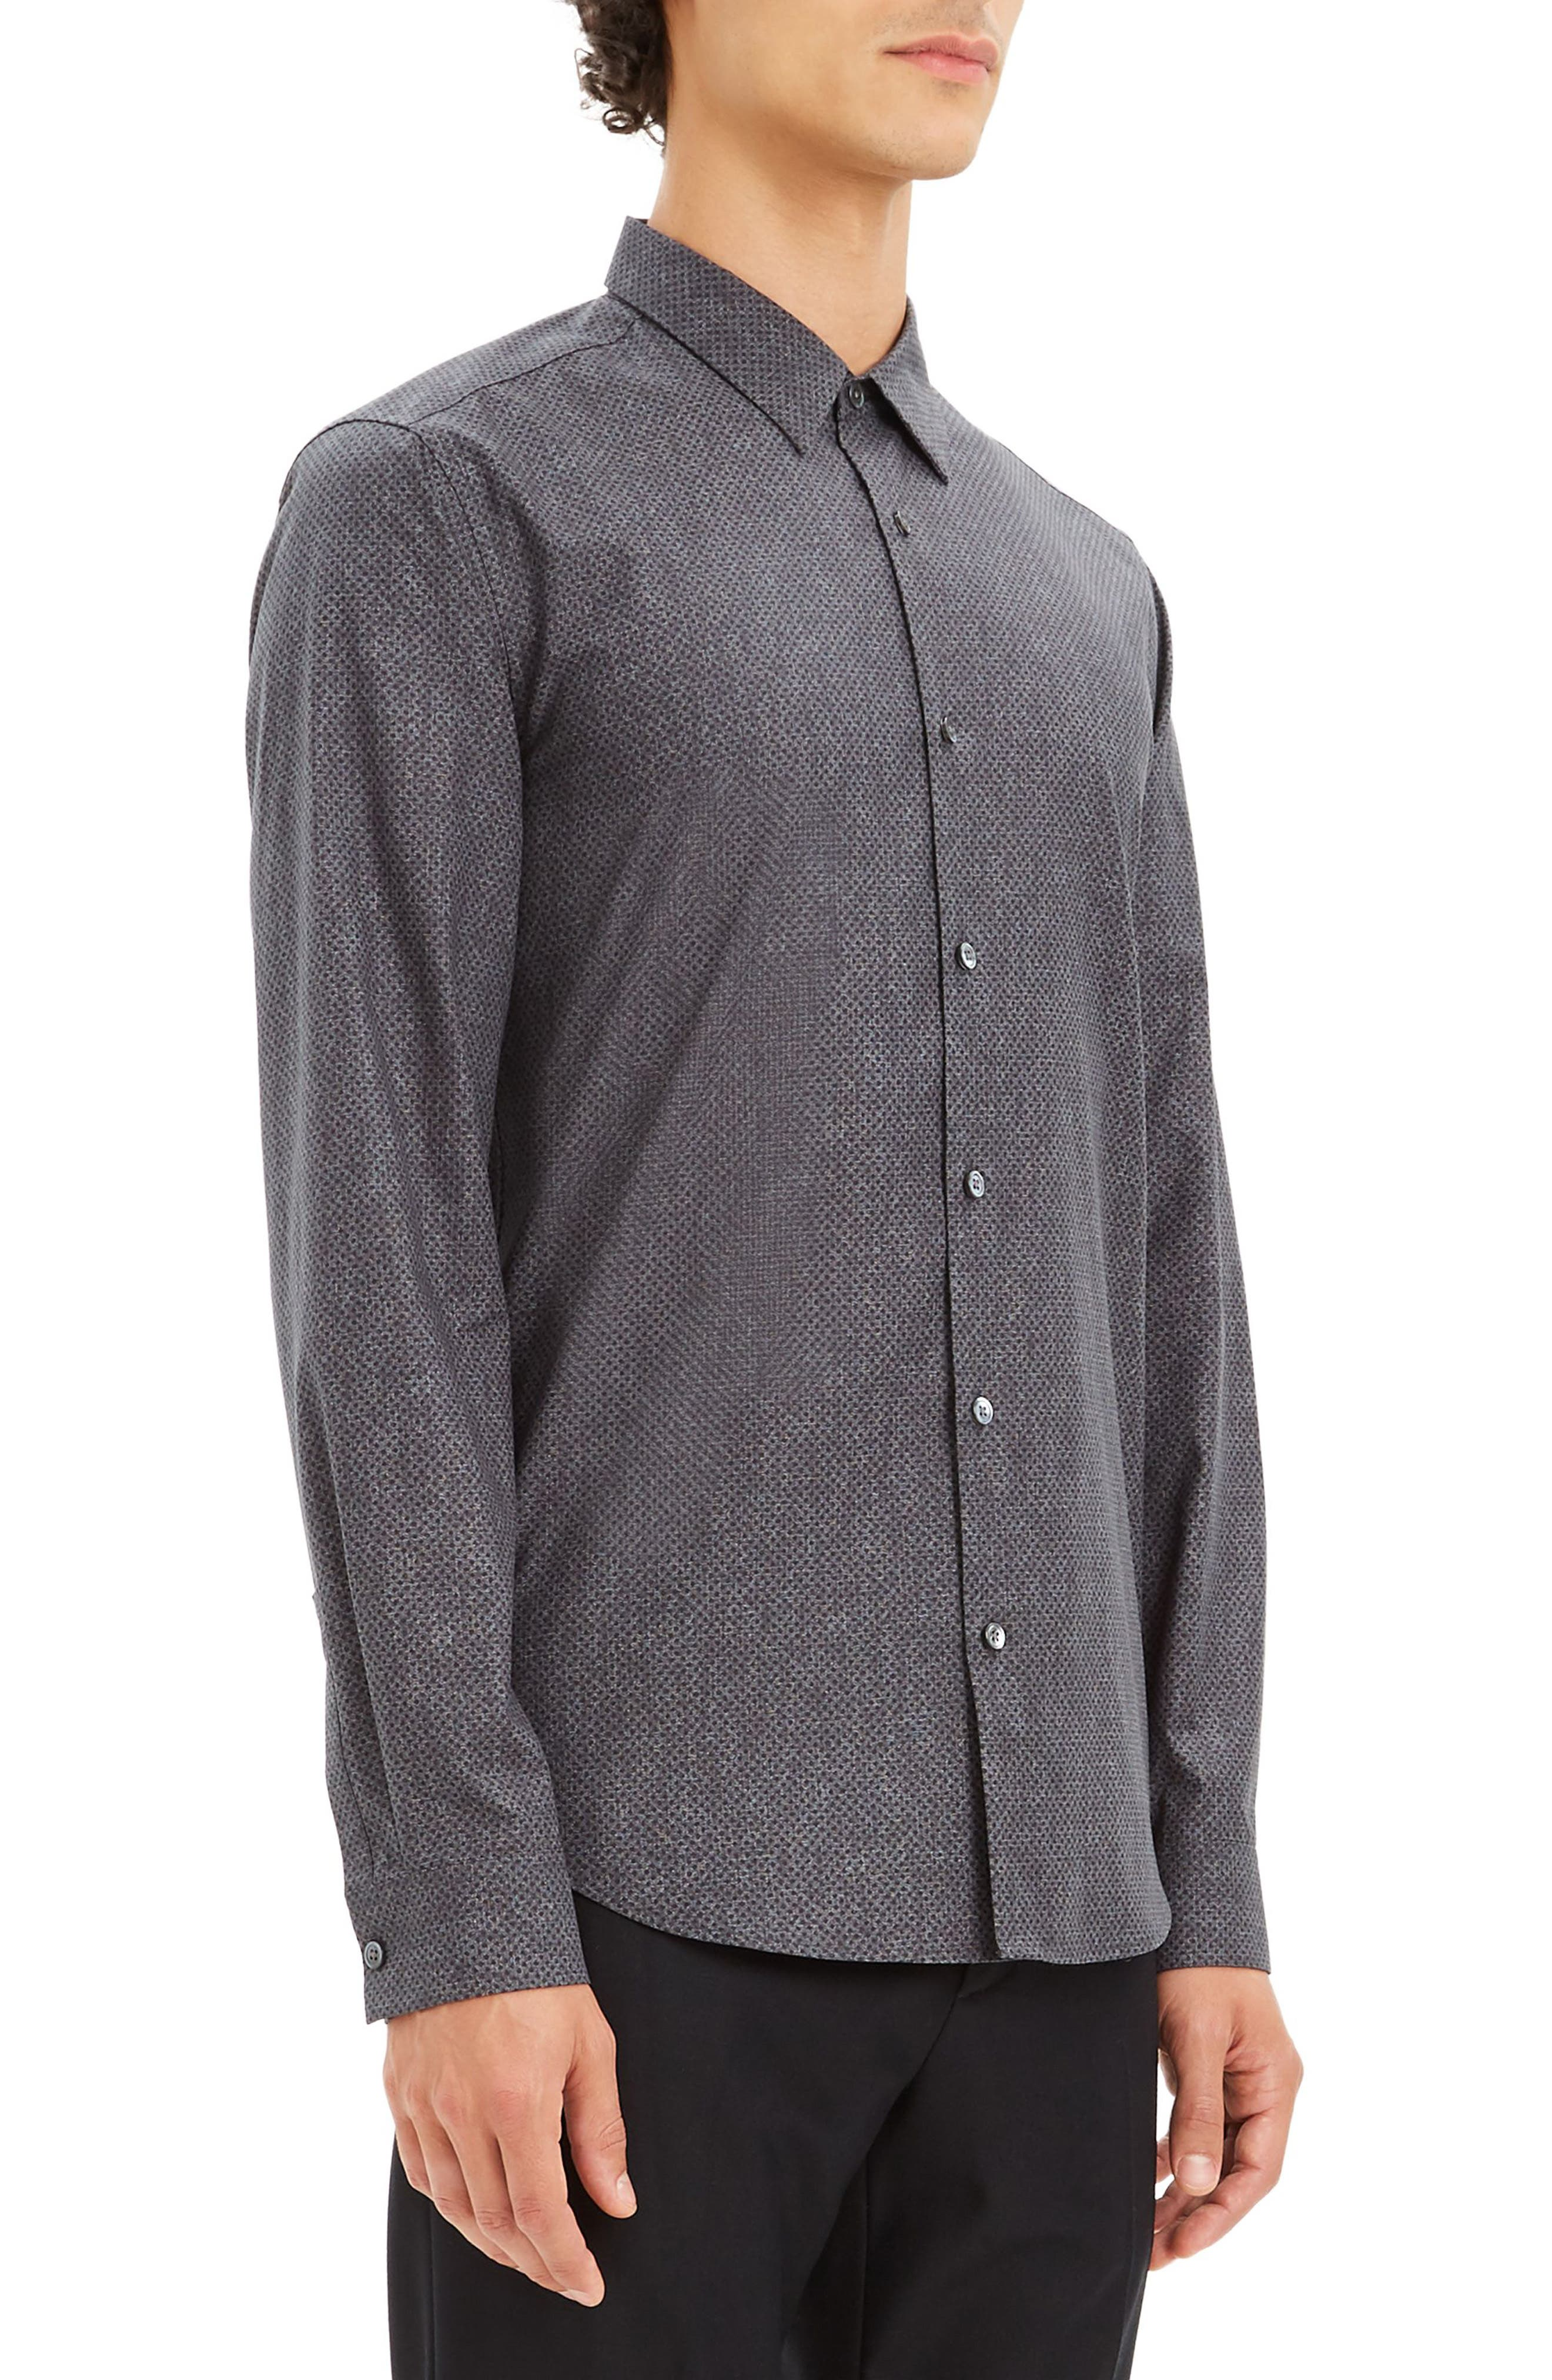 Irving Tone Regular Fit Dot Print Sport Shirt,                             Alternate thumbnail 3, color,                             096